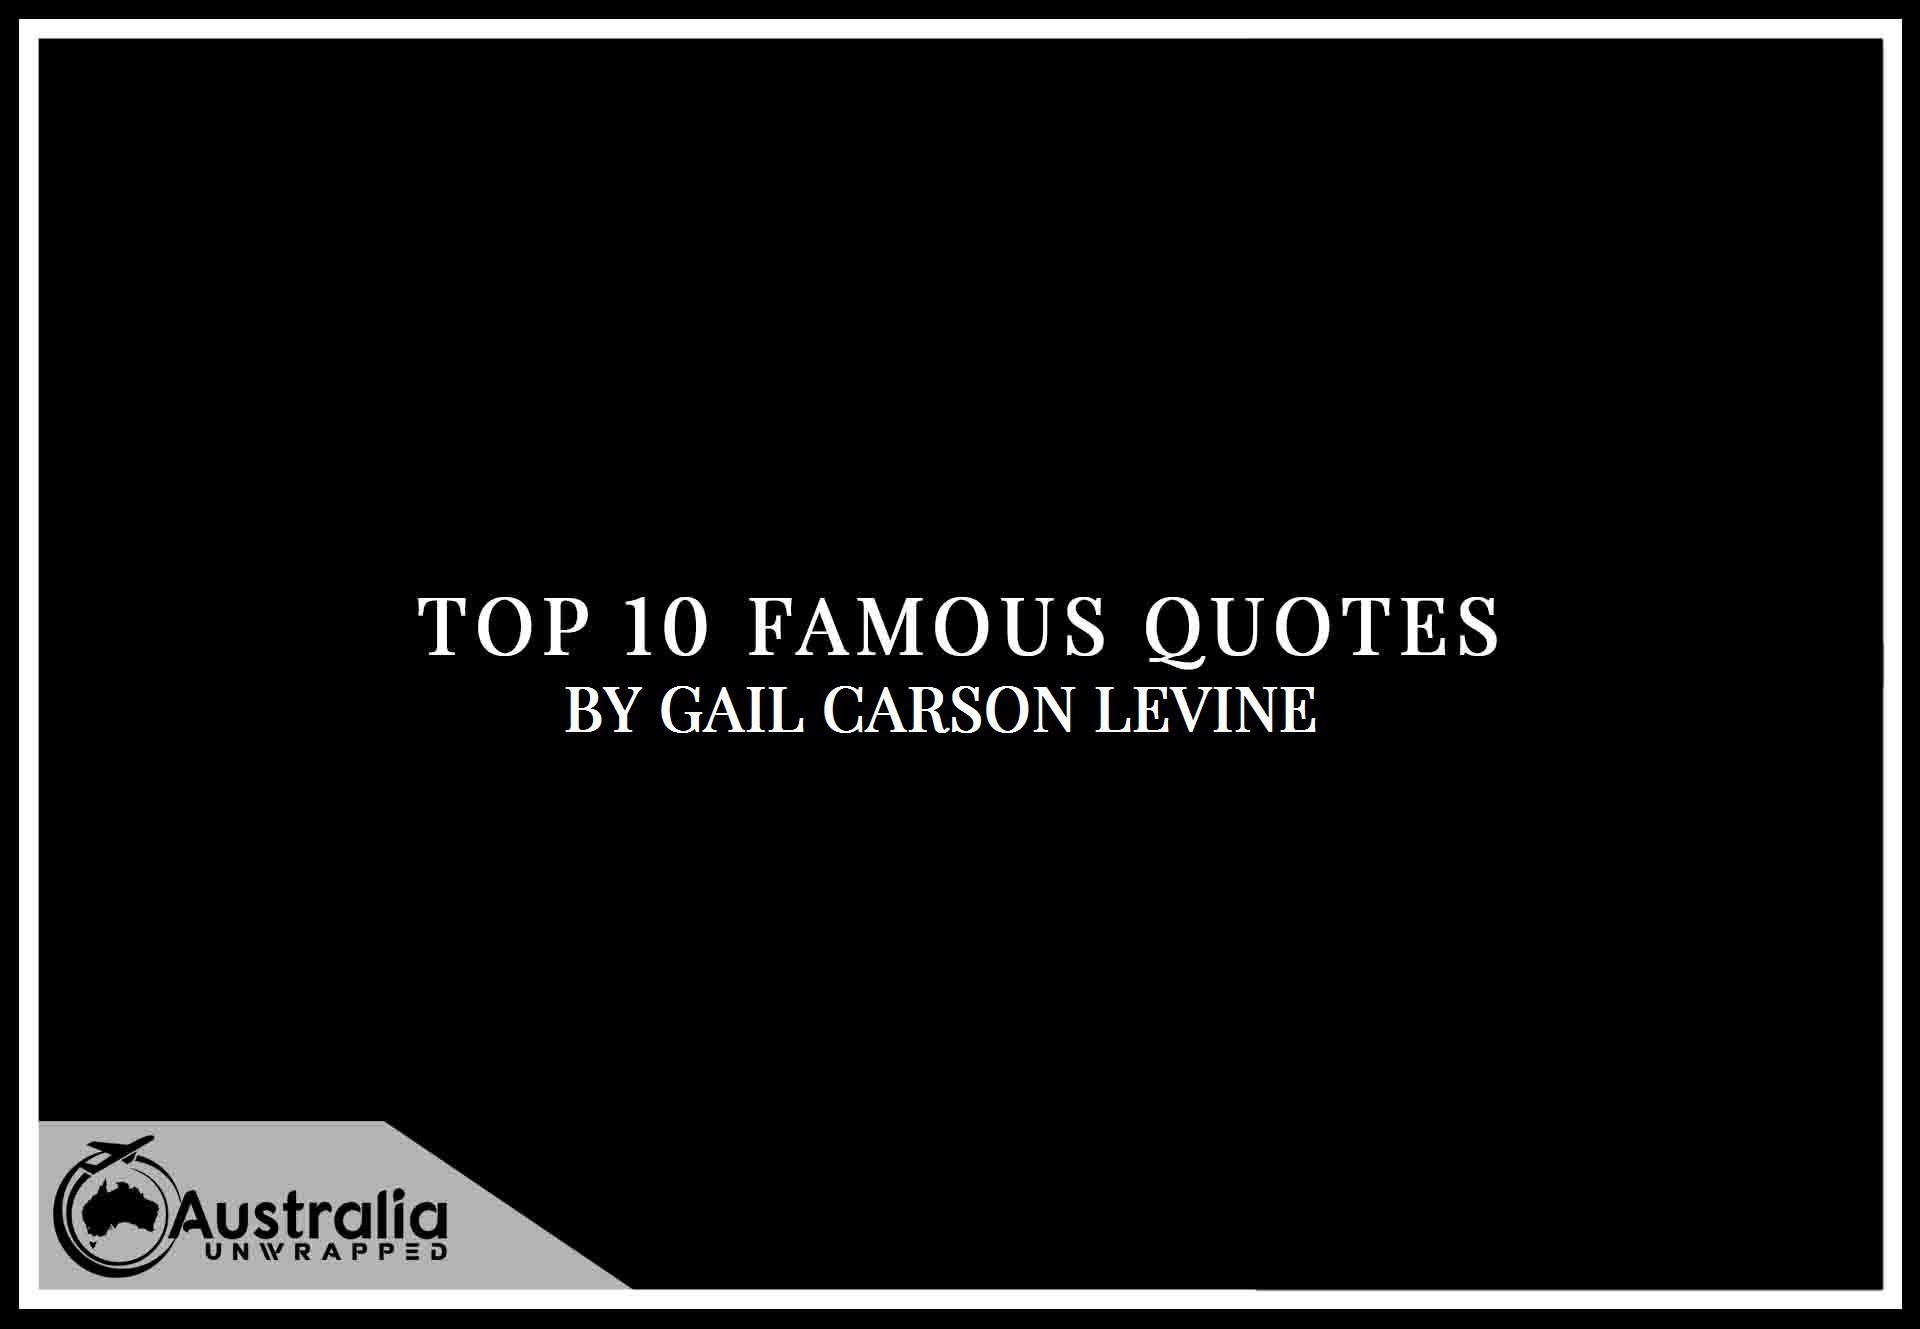 Gail Carson Levine's Top 10 Popular and Famous Quotes